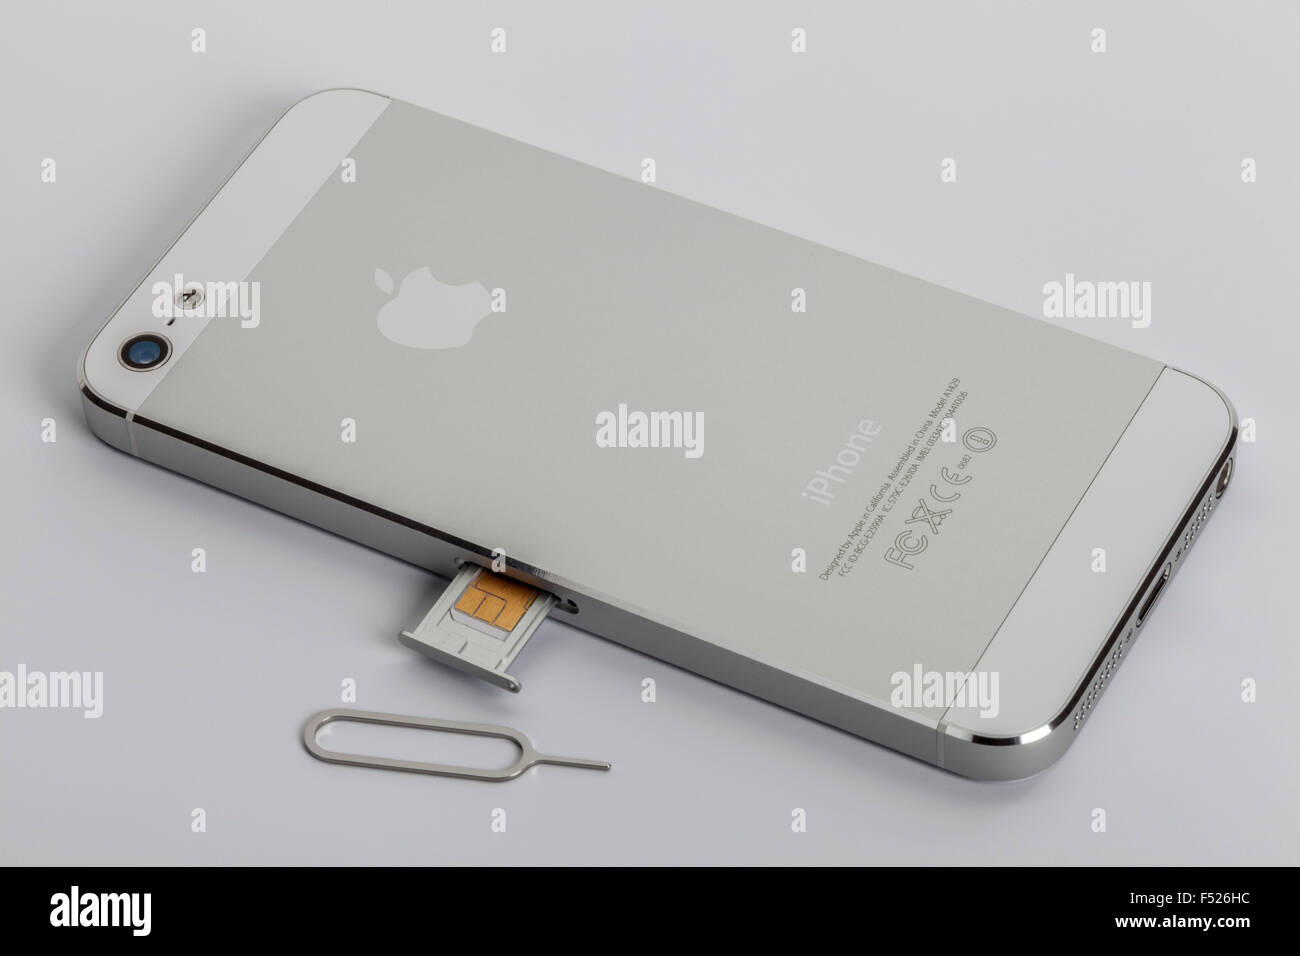 apple iphone 5 back nano sim card tray tool stock photo royalty free image 89174216 alamy. Black Bedroom Furniture Sets. Home Design Ideas